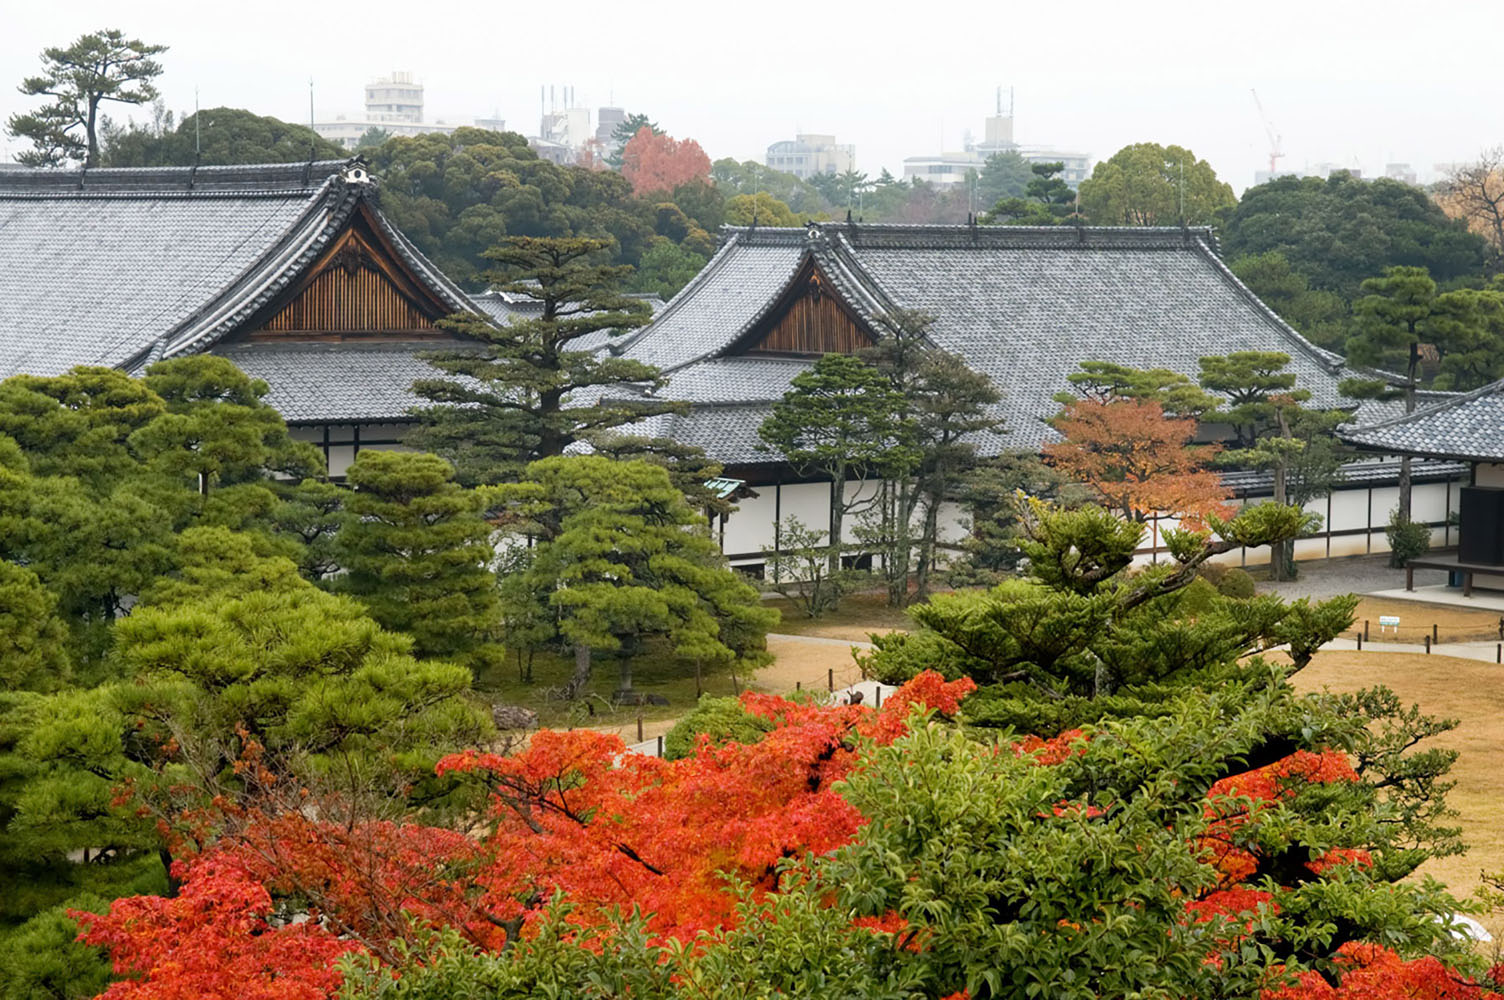 Nijo Castle in the fall with colorful leaves in the foreground